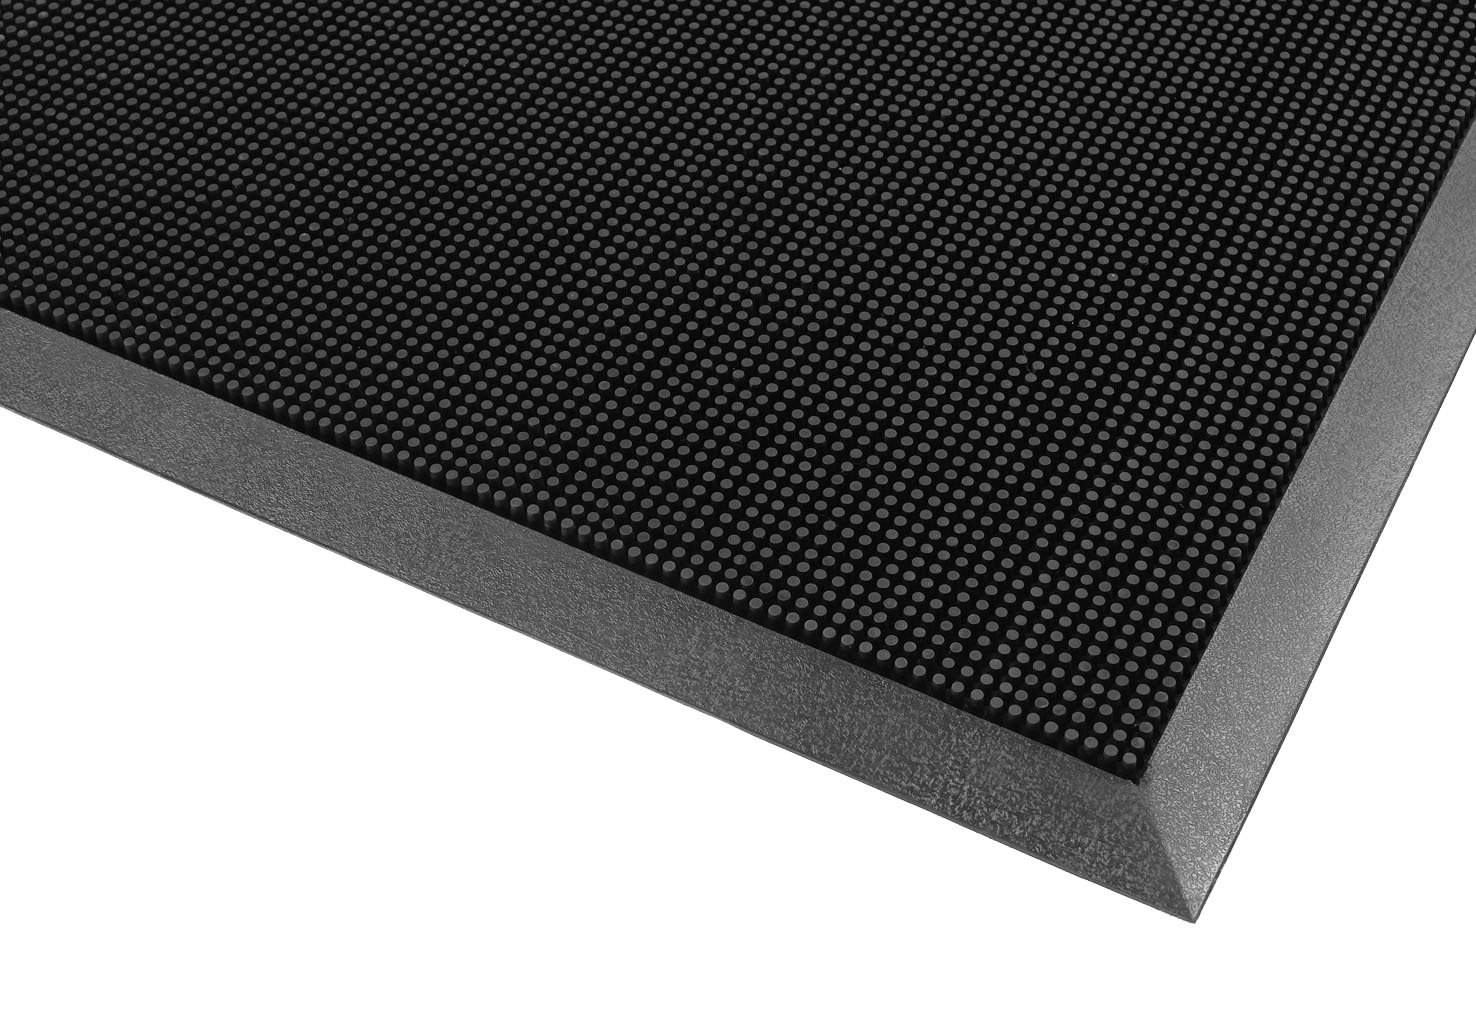 Notrax 345 Rubber Brush Styrene-Butadiene Rubber Entrance Mat, For Construction Traffic Area and Municipal Buildings, 24'' Width x 32'' Length x 5/8'' Thickness, Black